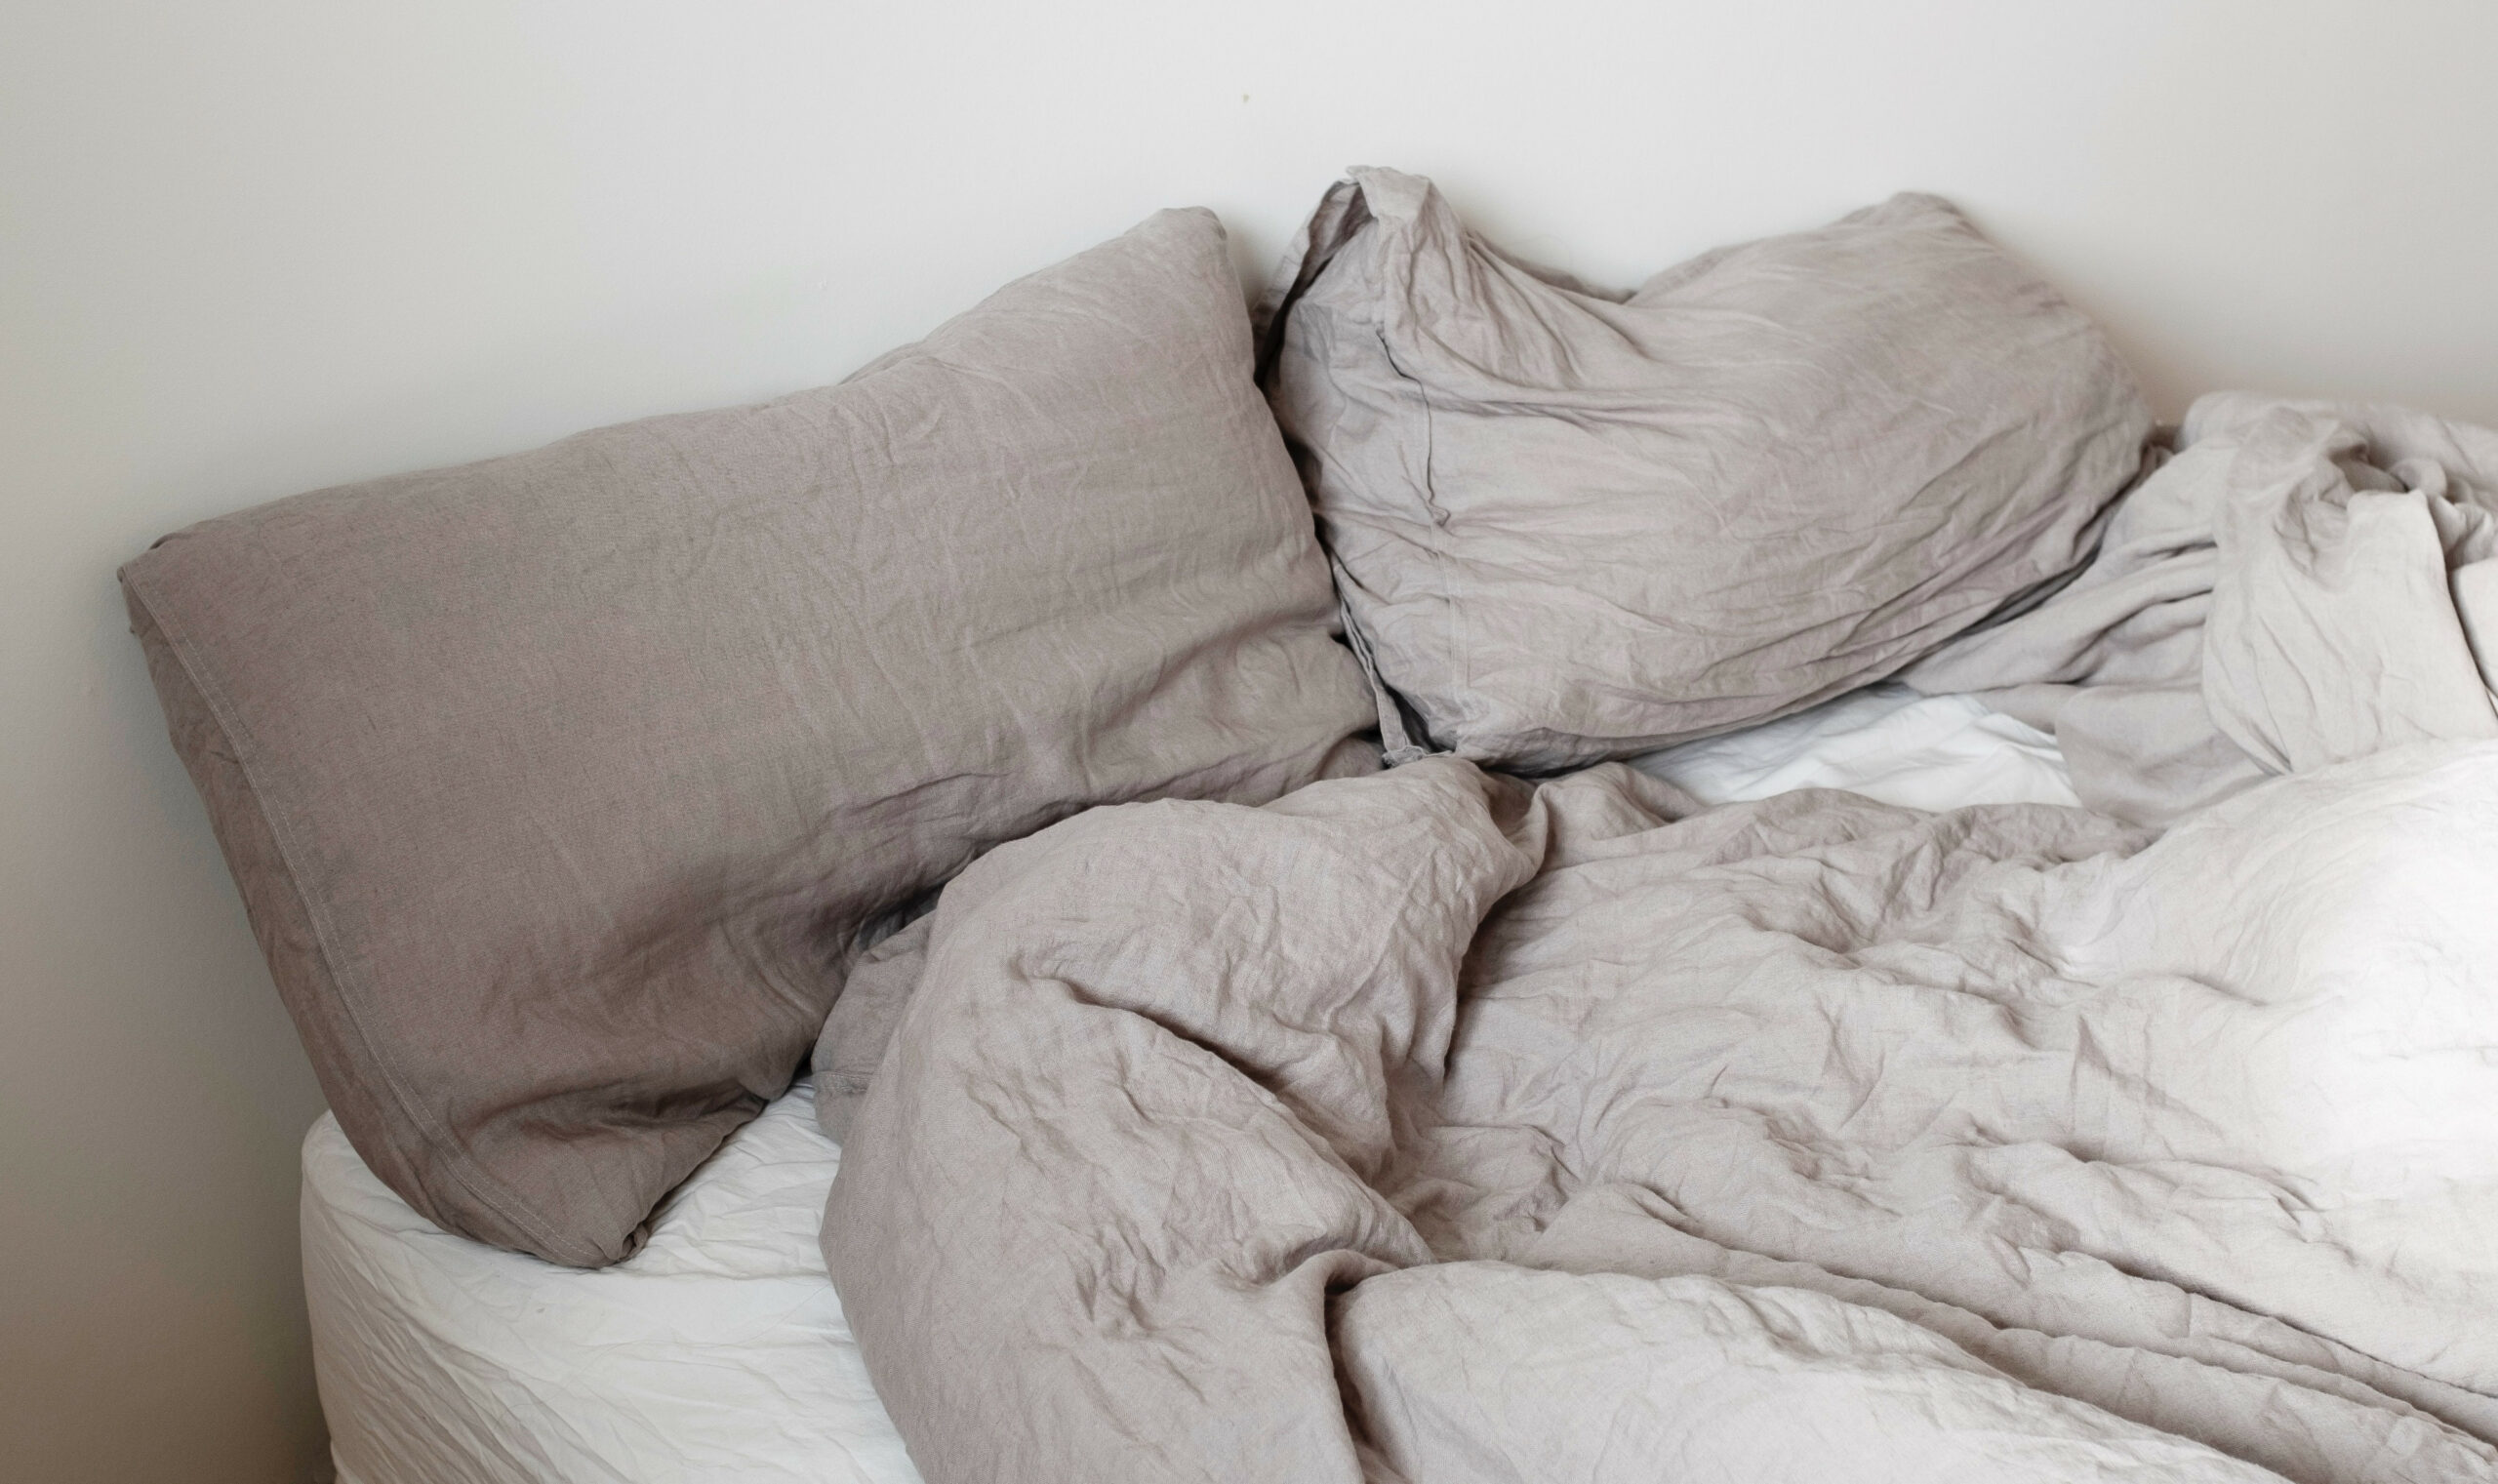 dirty old pillow needs to be replaced